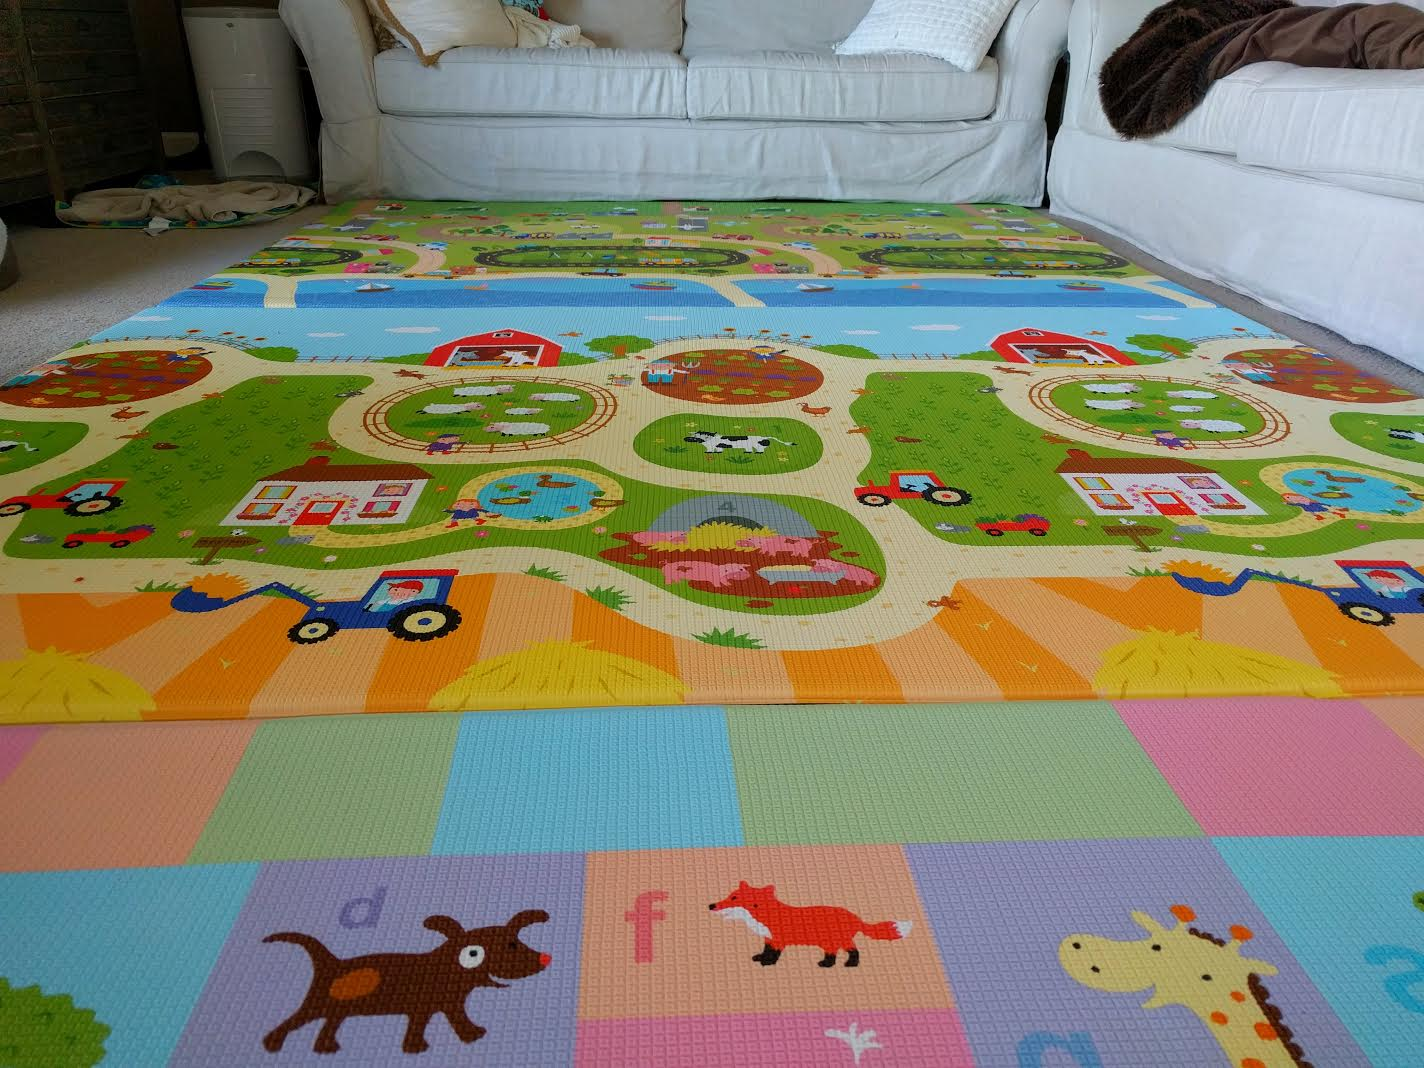 Baby Care Mat Review for Babies - The Best Playmat that is Non-Toxic